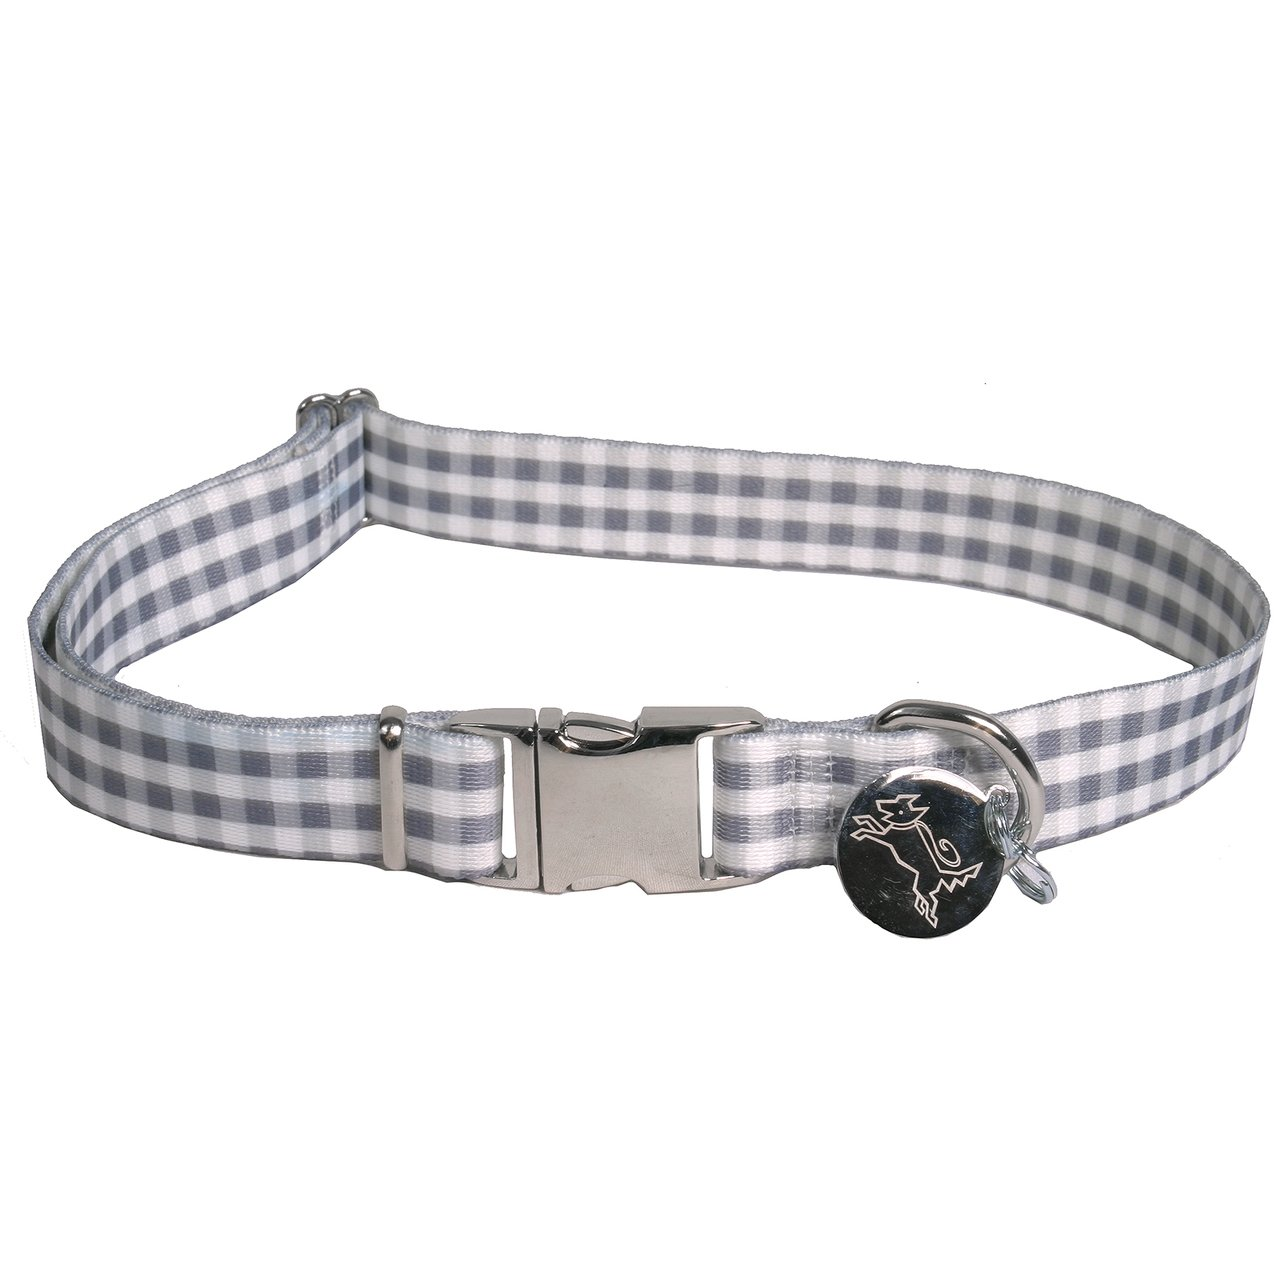 Southern Dawg Gingham Gray Dog Collar -Medium-3/4'' Neck 14 to 20'' Made in the USA by Yellow Dog Design by Yellow Dog Design (Image #1)